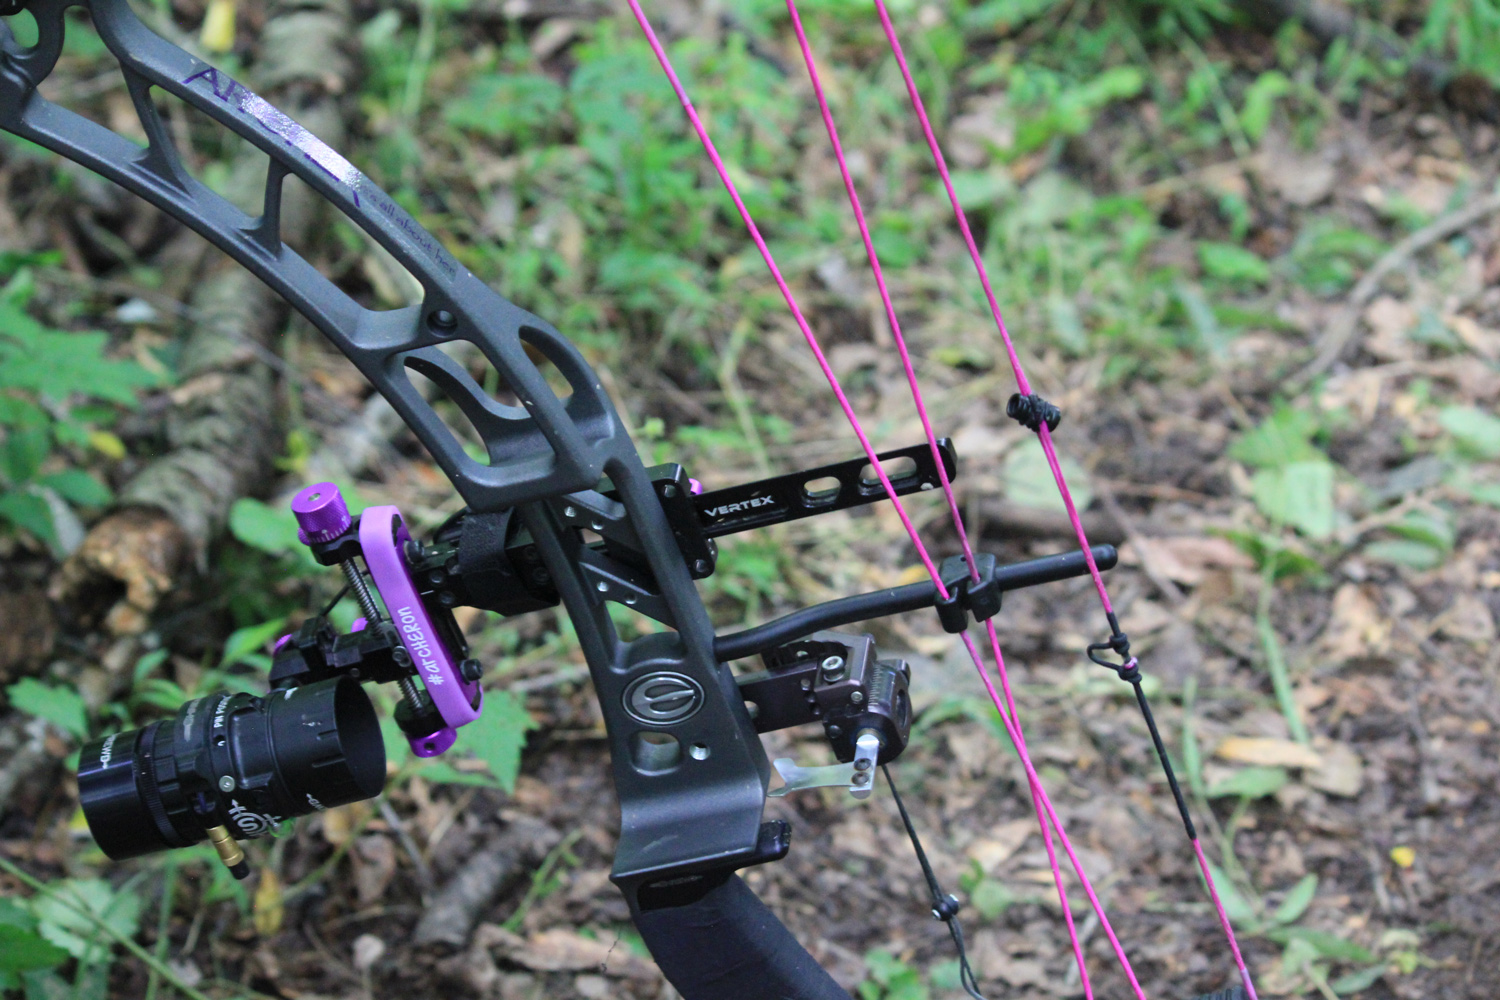 Winner's Choice Proprietary Interlocking Molecular Manufacturing Process ensures your bowstring is pre-stretched